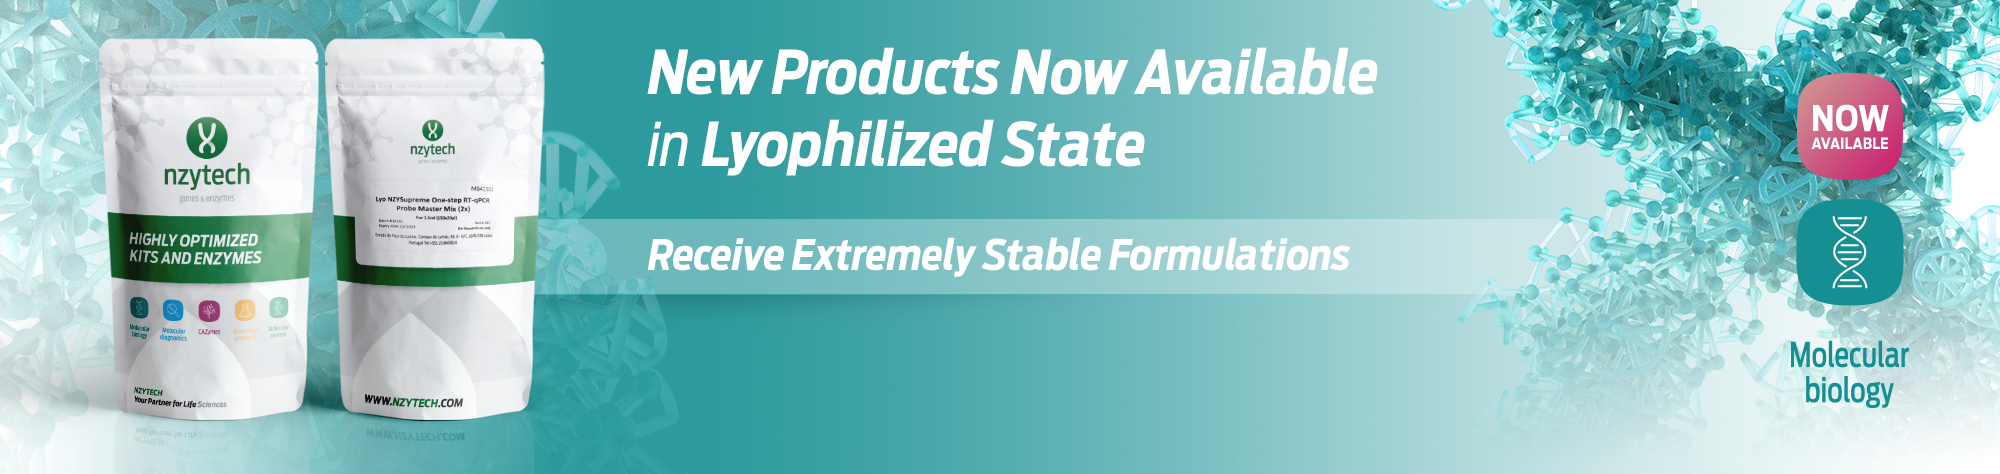 New Products in Lyophilized State